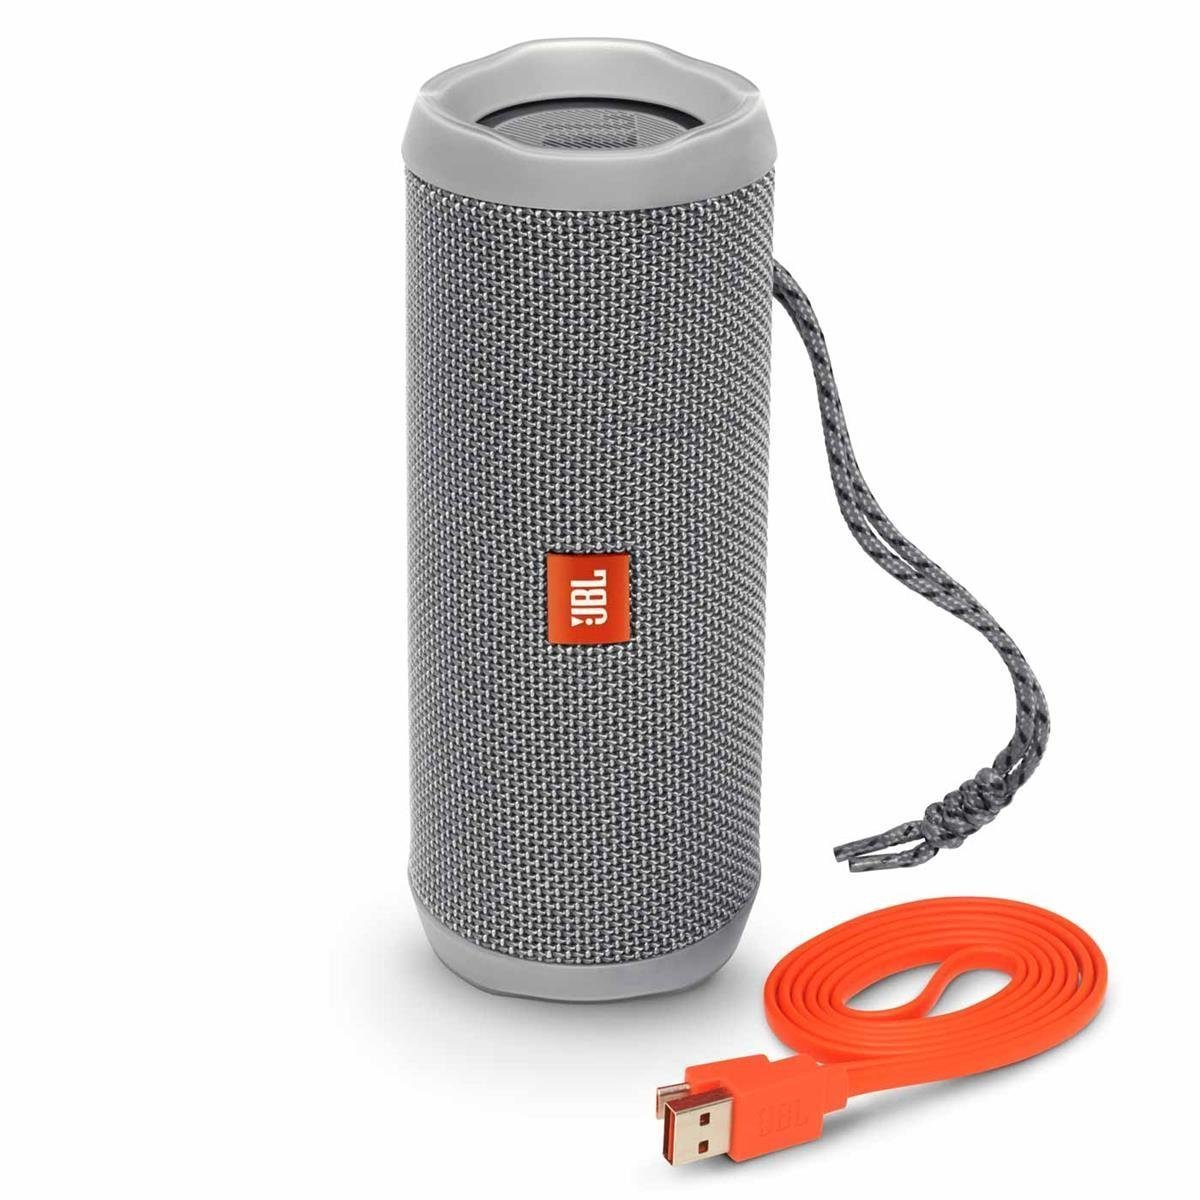 Awesome Bluetooth Speakers for Construction Workers